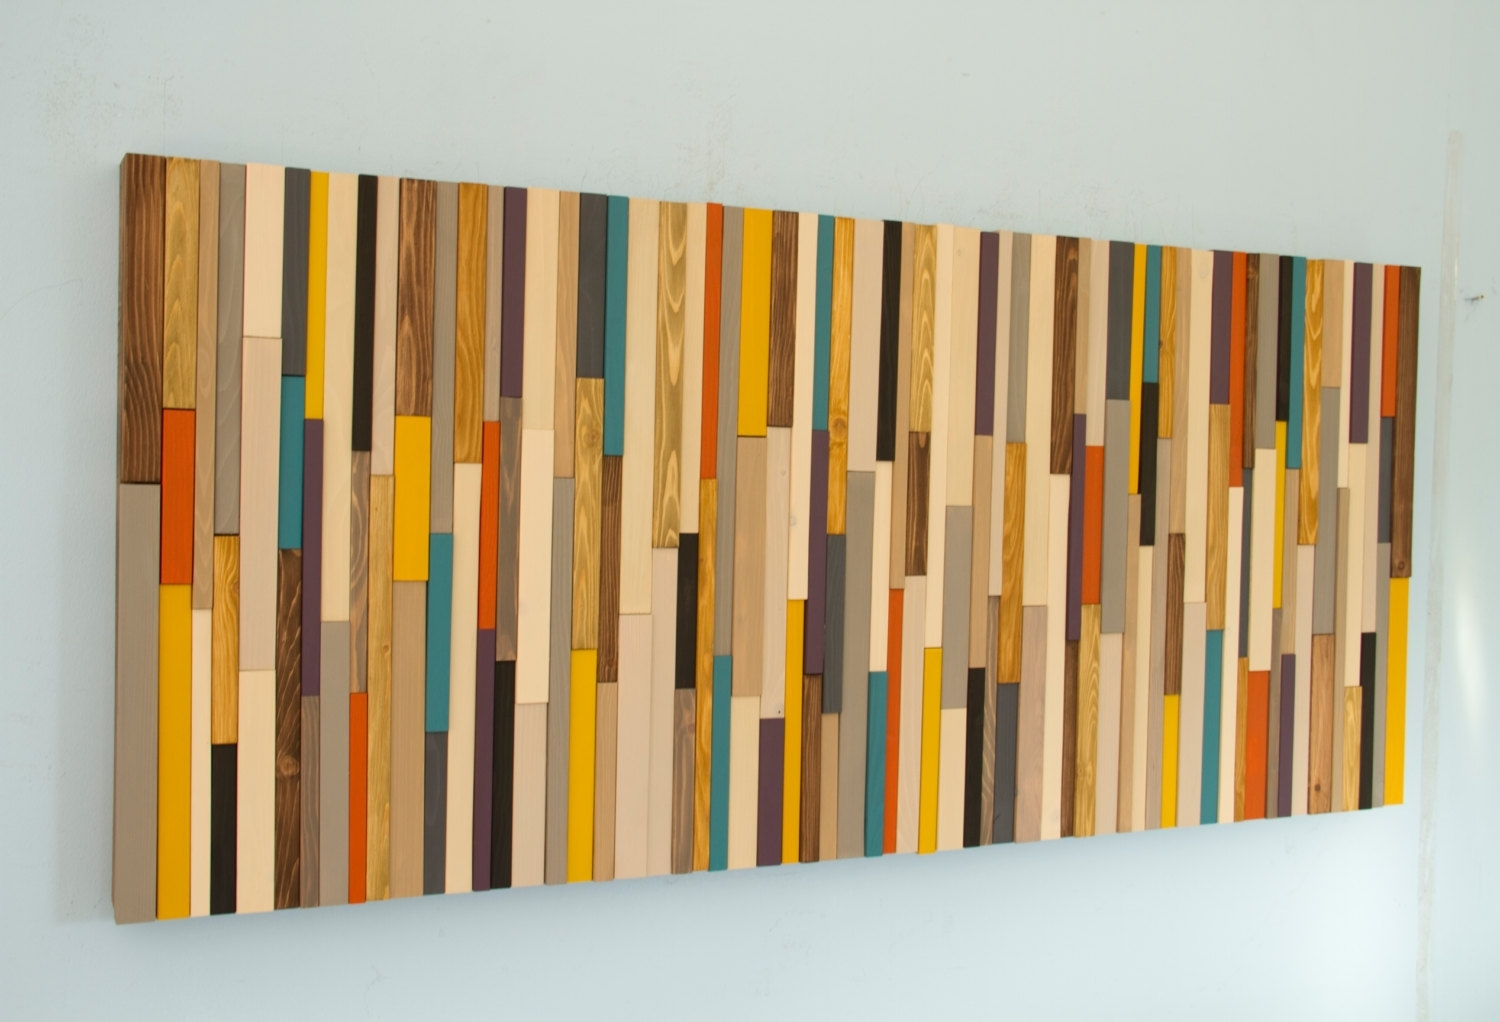 Mid Century Wall Art, Reclaimed Wood Art Sculpture, Painted Wood Regarding Current Mid Century Wall Art (View 10 of 20)